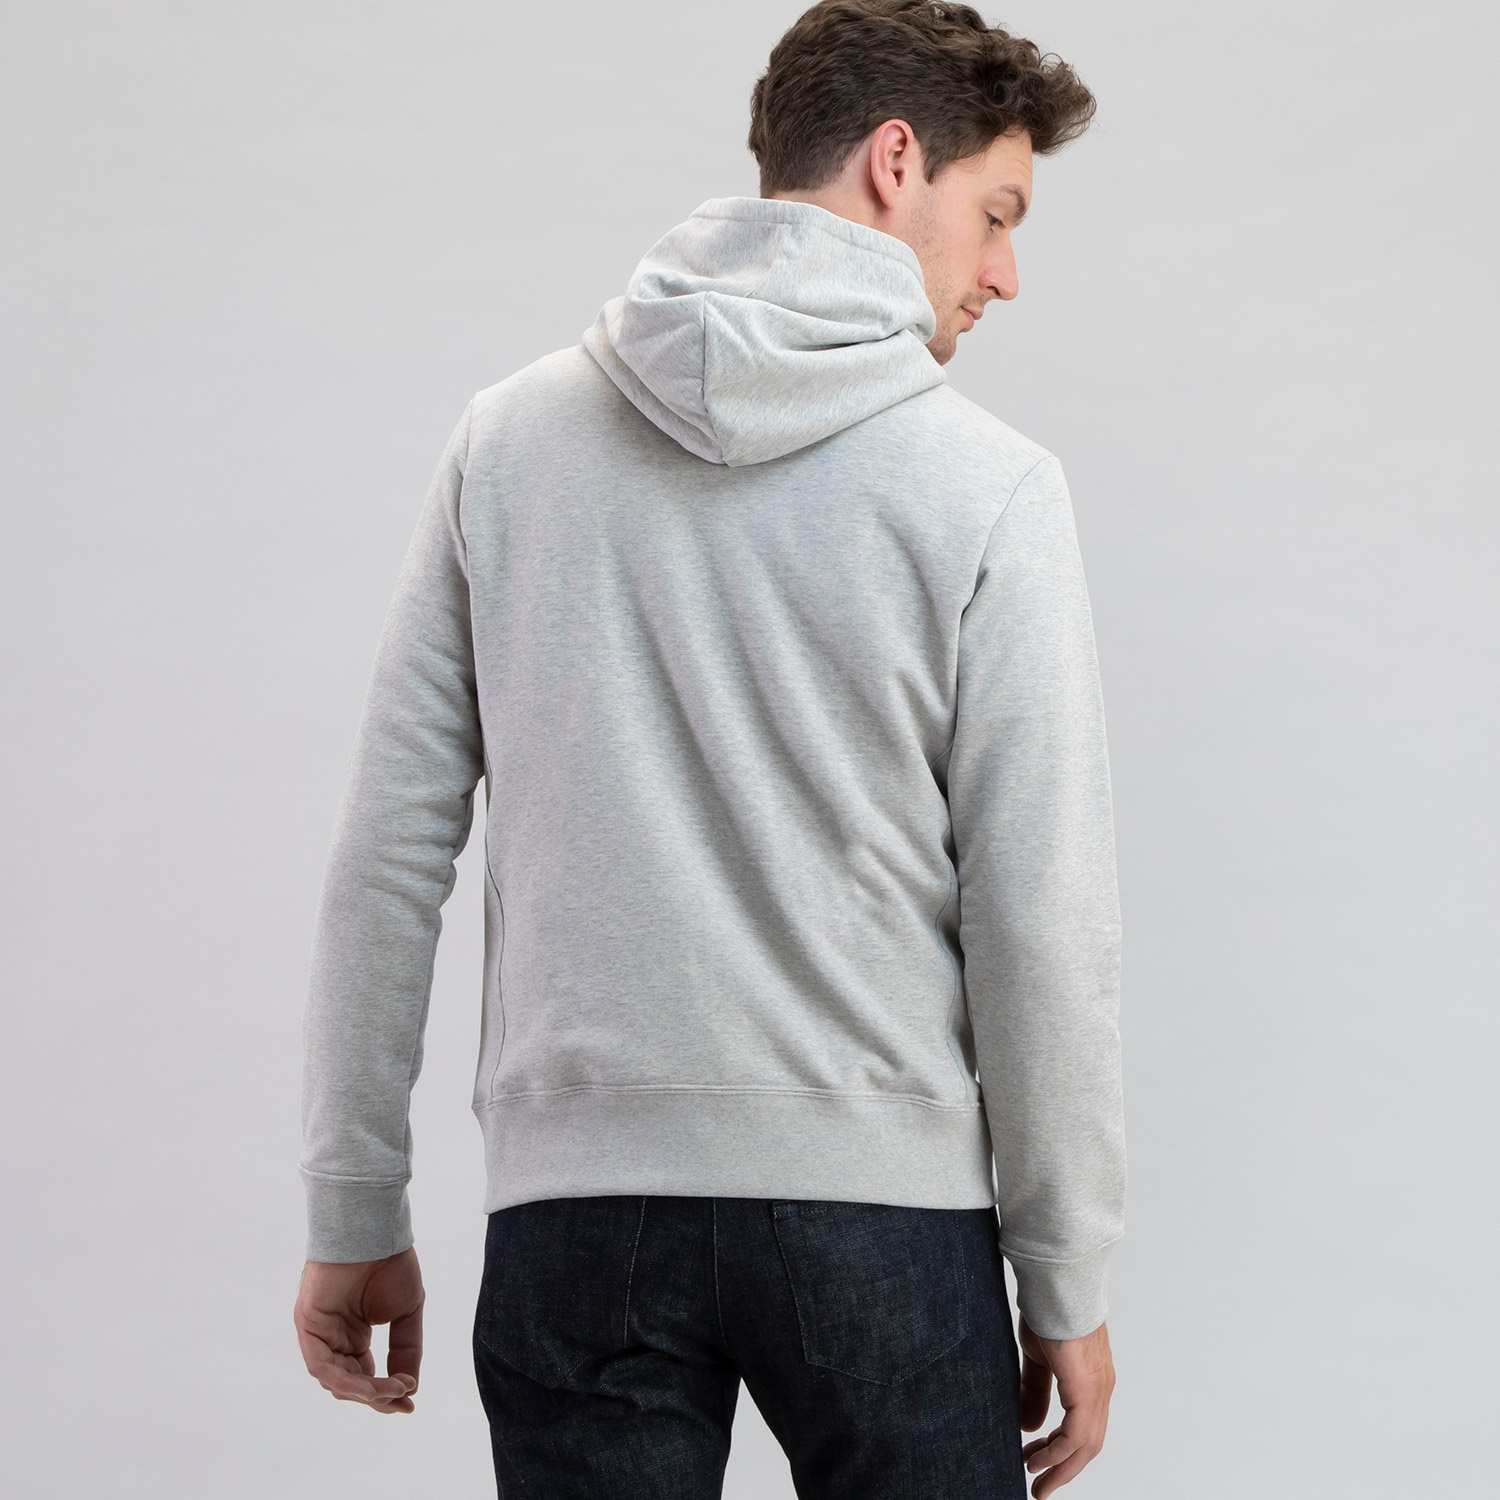 Electric Company Pullover Hoodie Heather Grey